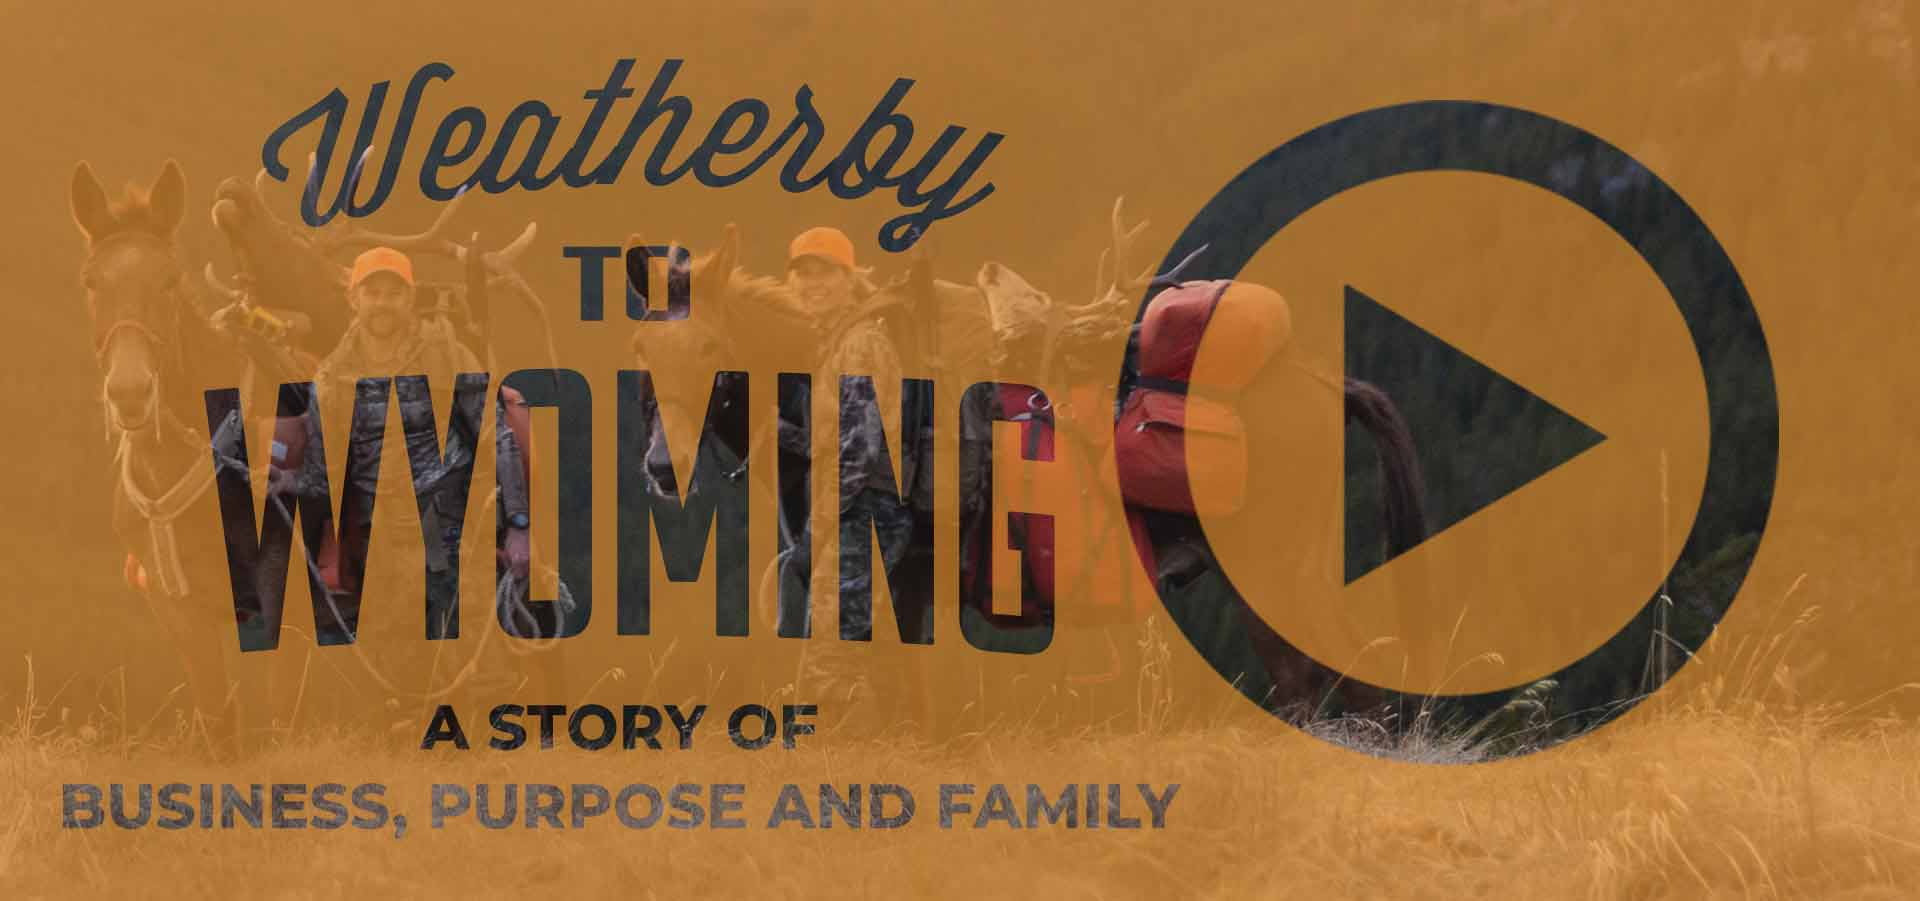 Weatherby, Inc